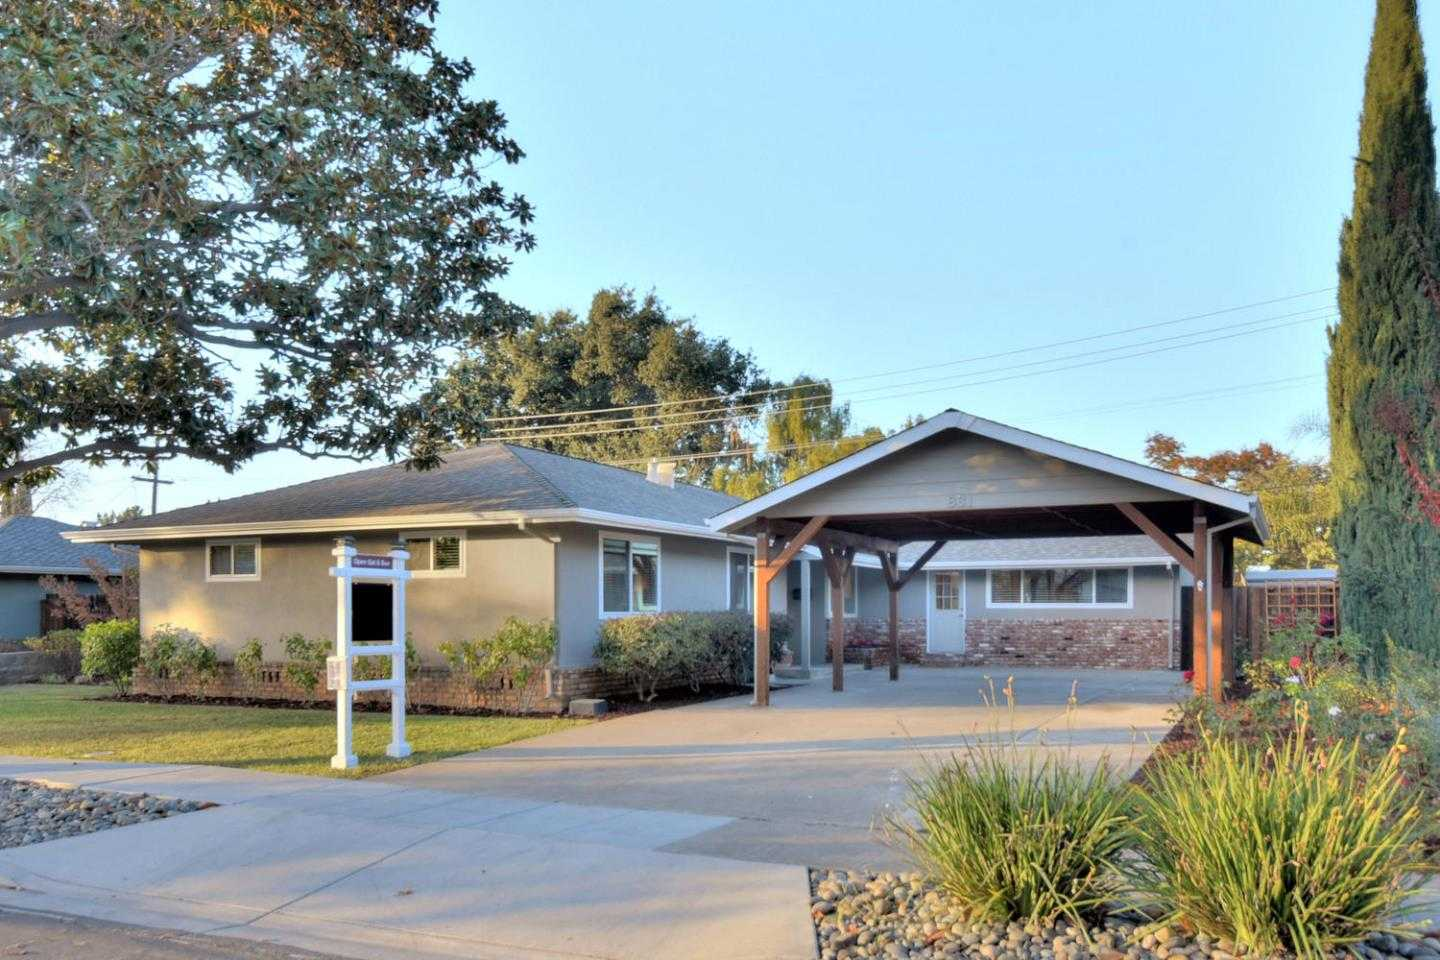 $2,349,000 - 4Br/3Ba -  for Sale in Sunnyvale